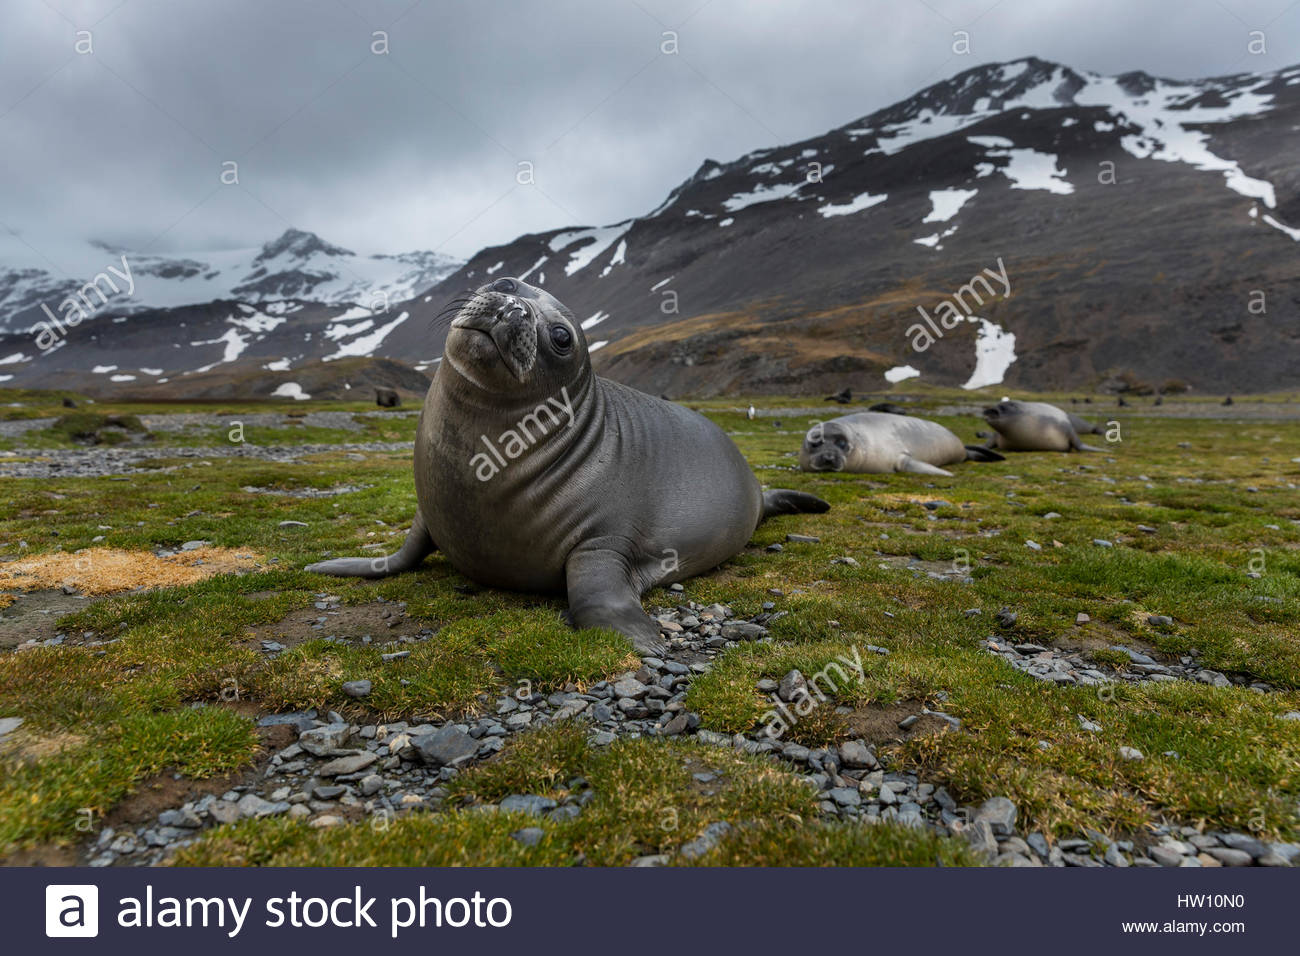 Three elephant seal pups lie in a row on grass. - Stock Image